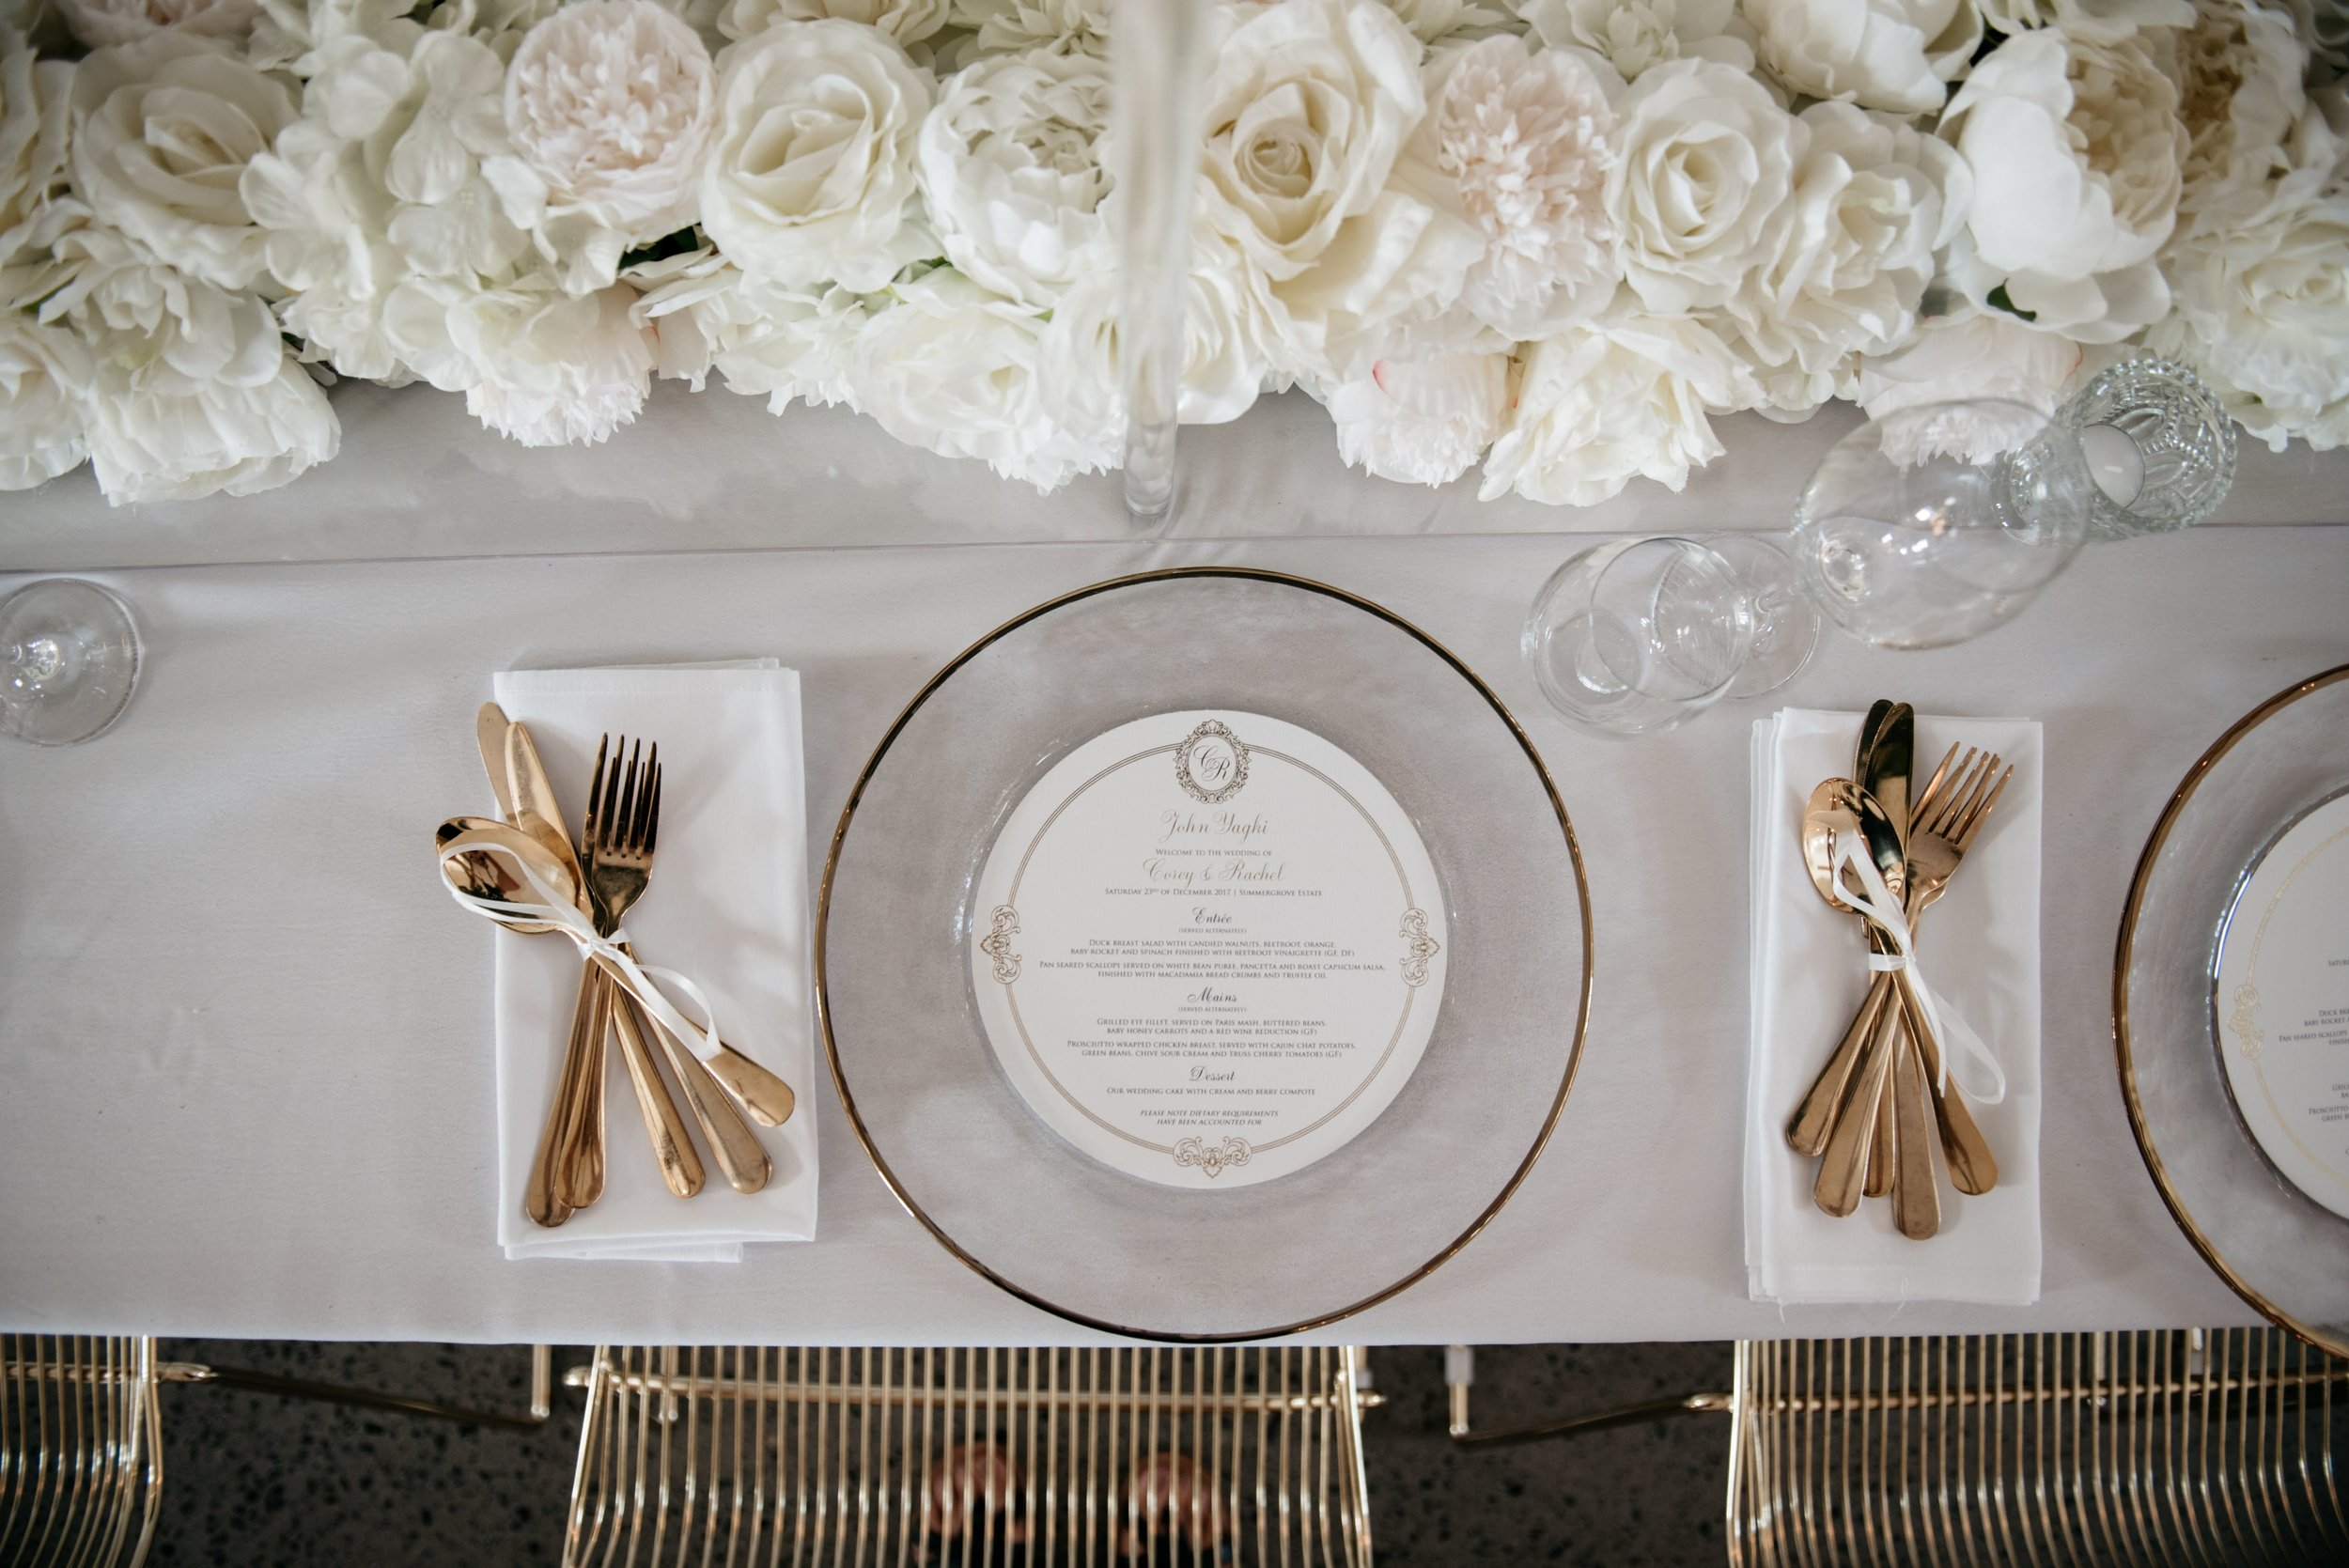 Real Wedding at Summergrove Estate Barn, Hampton Event Hire Blog, Tableware and Gold Cutlery